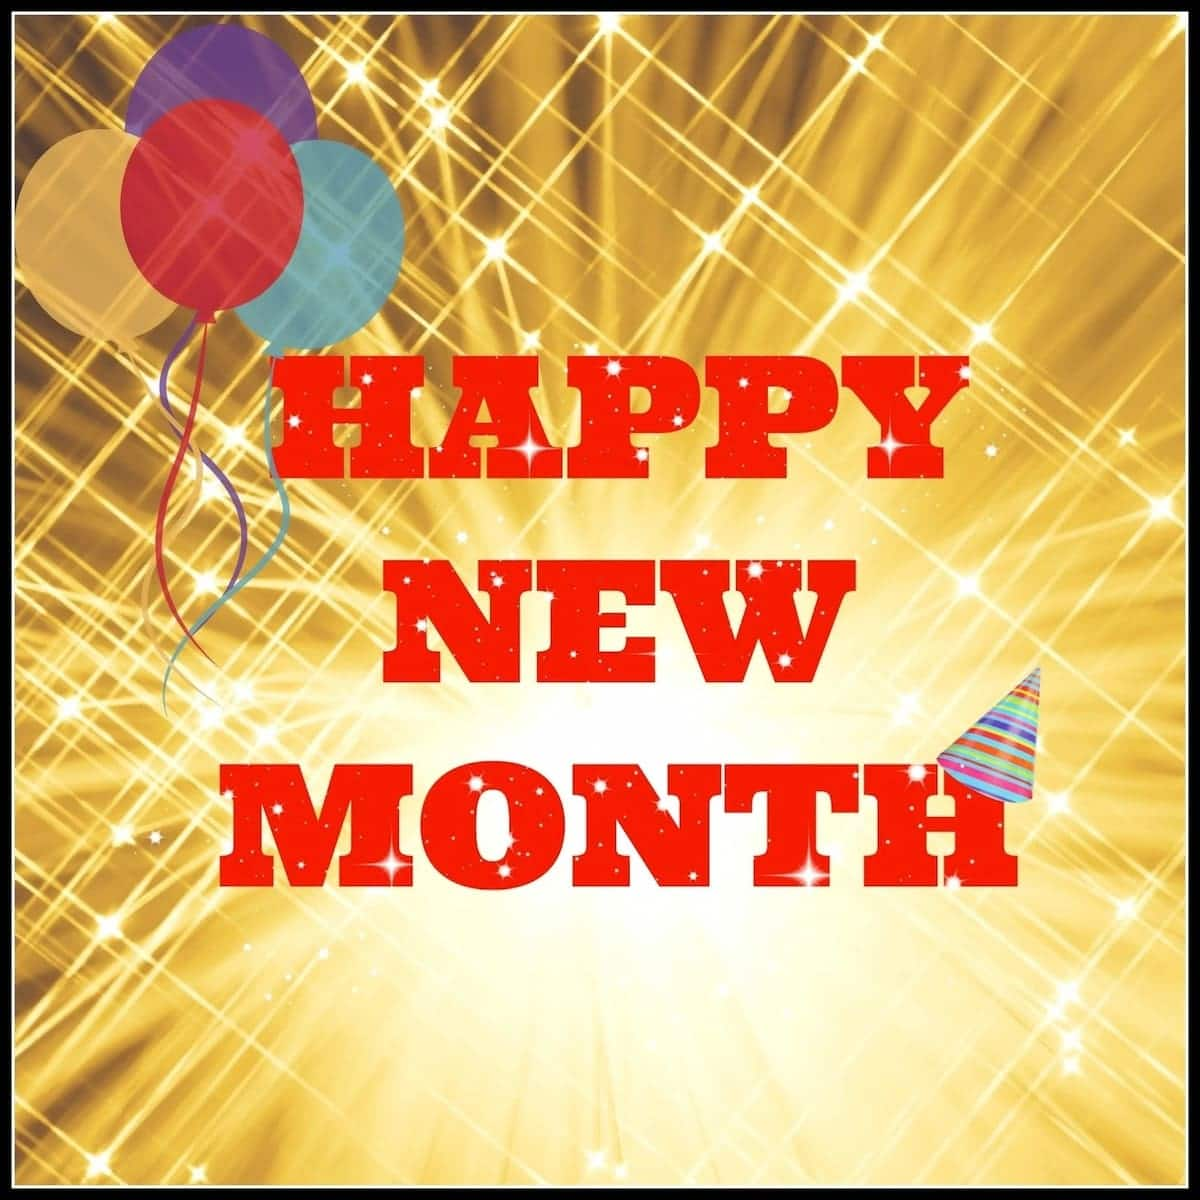 new month wishes new month quotes happy new month my love funny new month messages prayer for new month